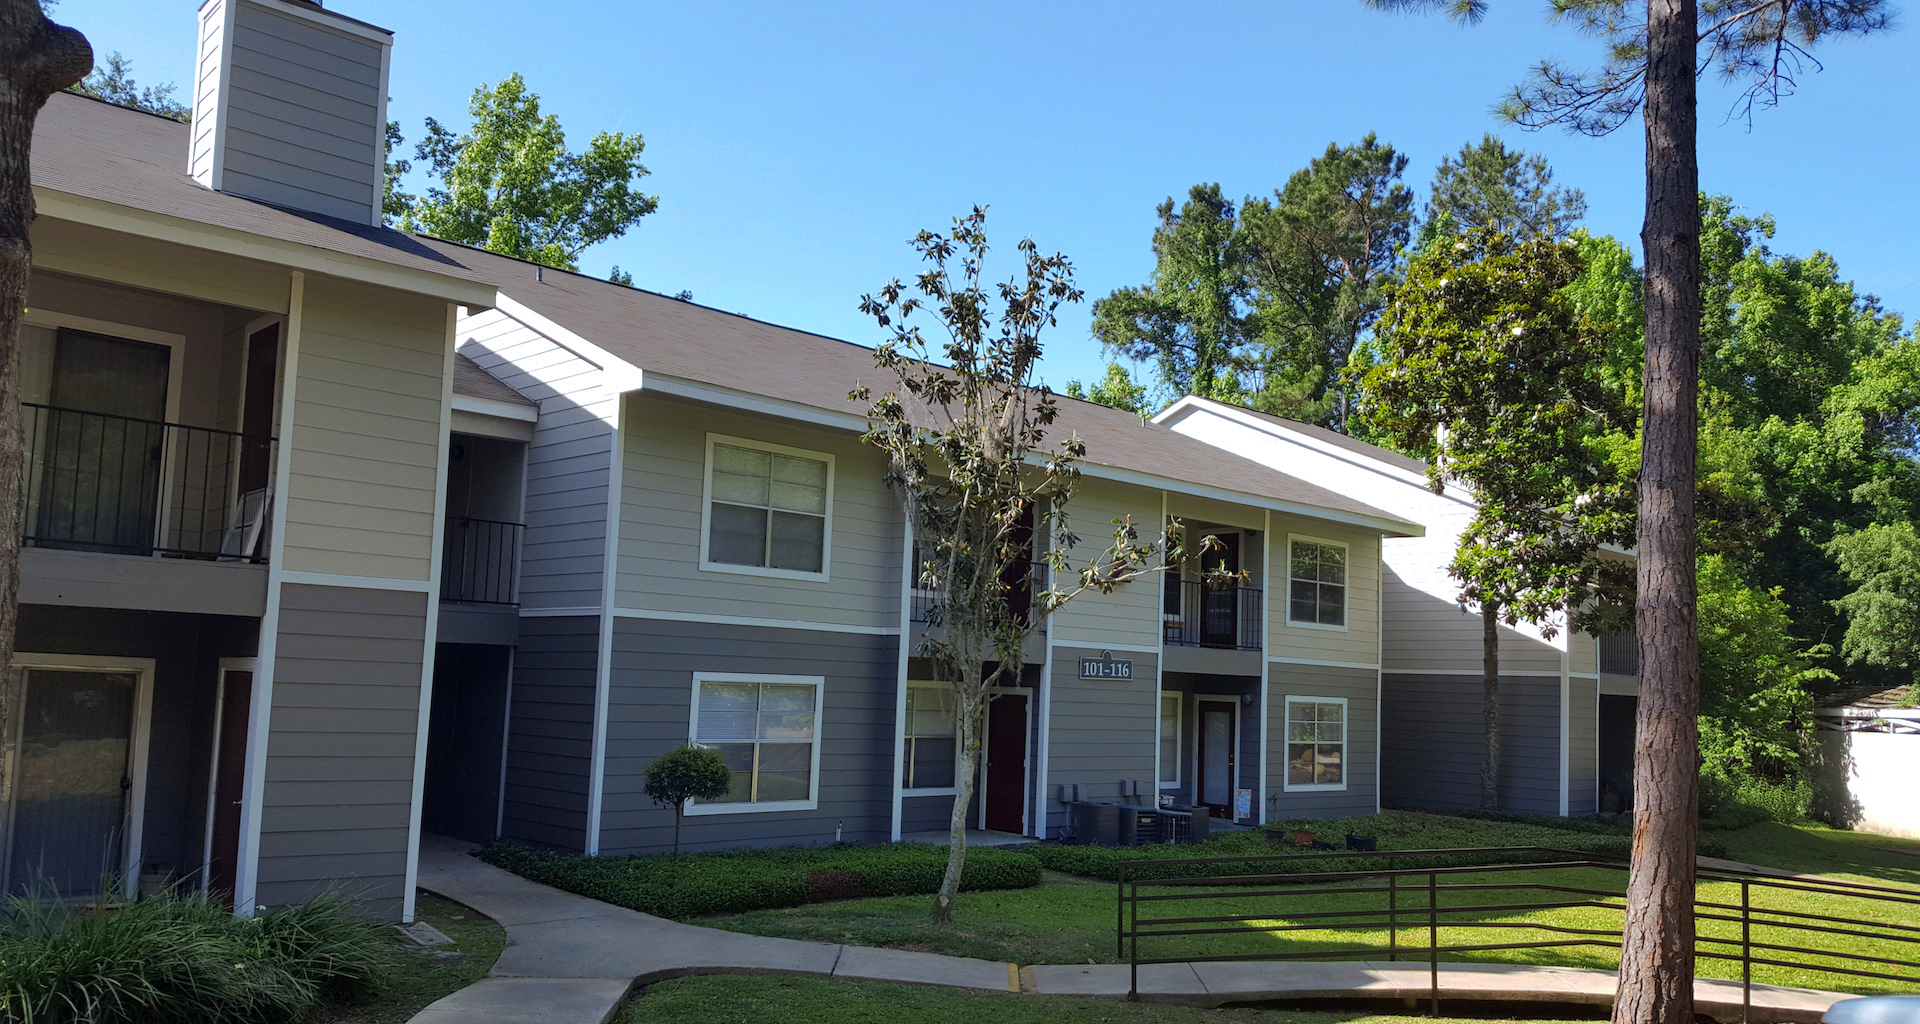 Cypress Pointe Apartments In Tallahassee Florida 32309 Newly Renovated And  Updated